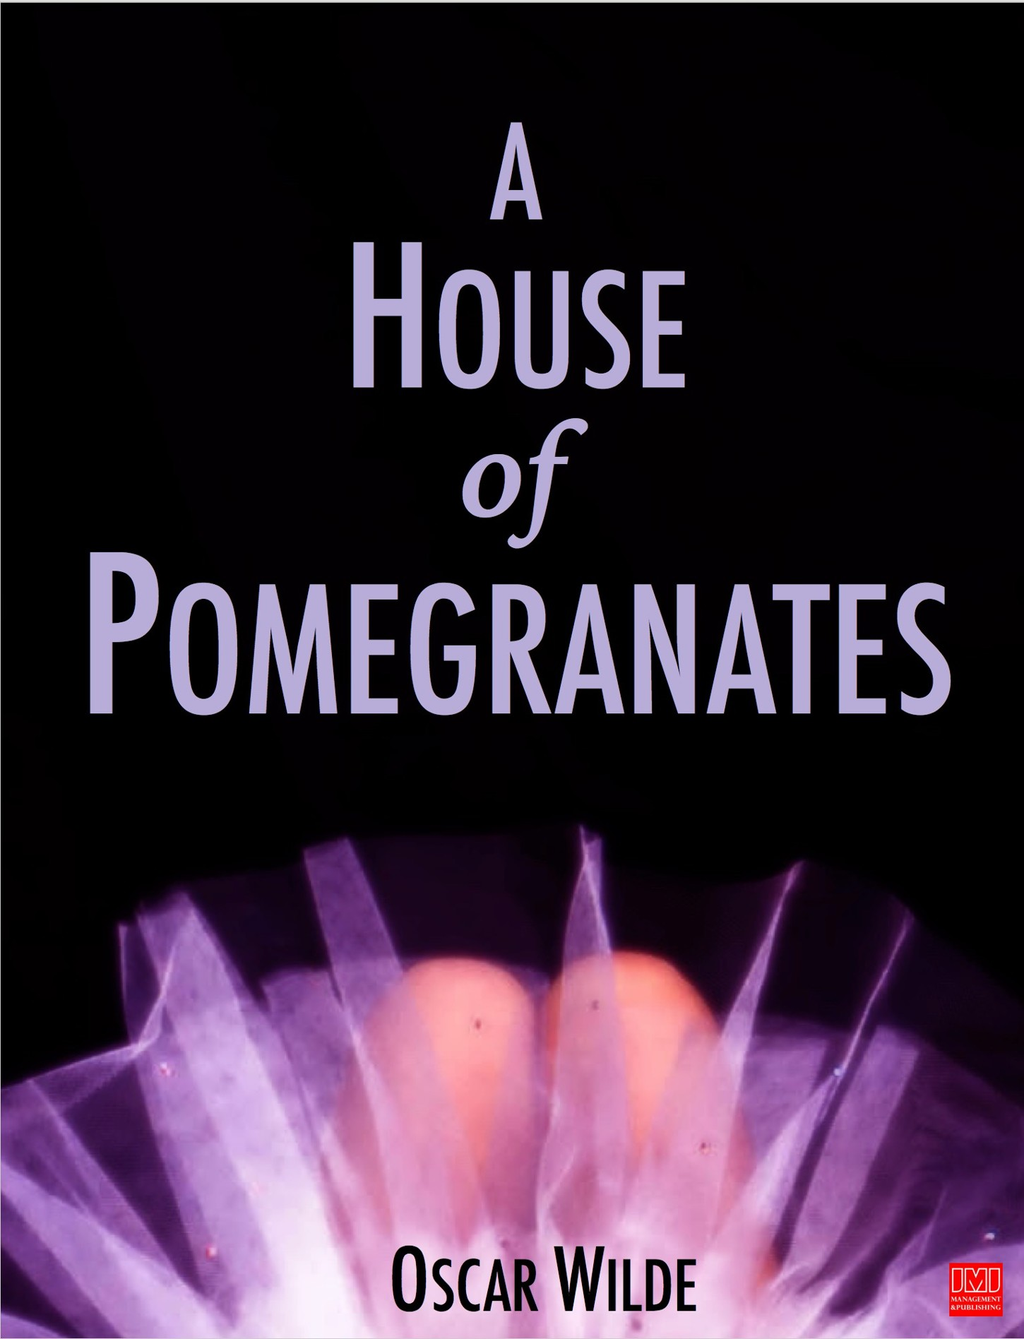 A House of Pomegranates